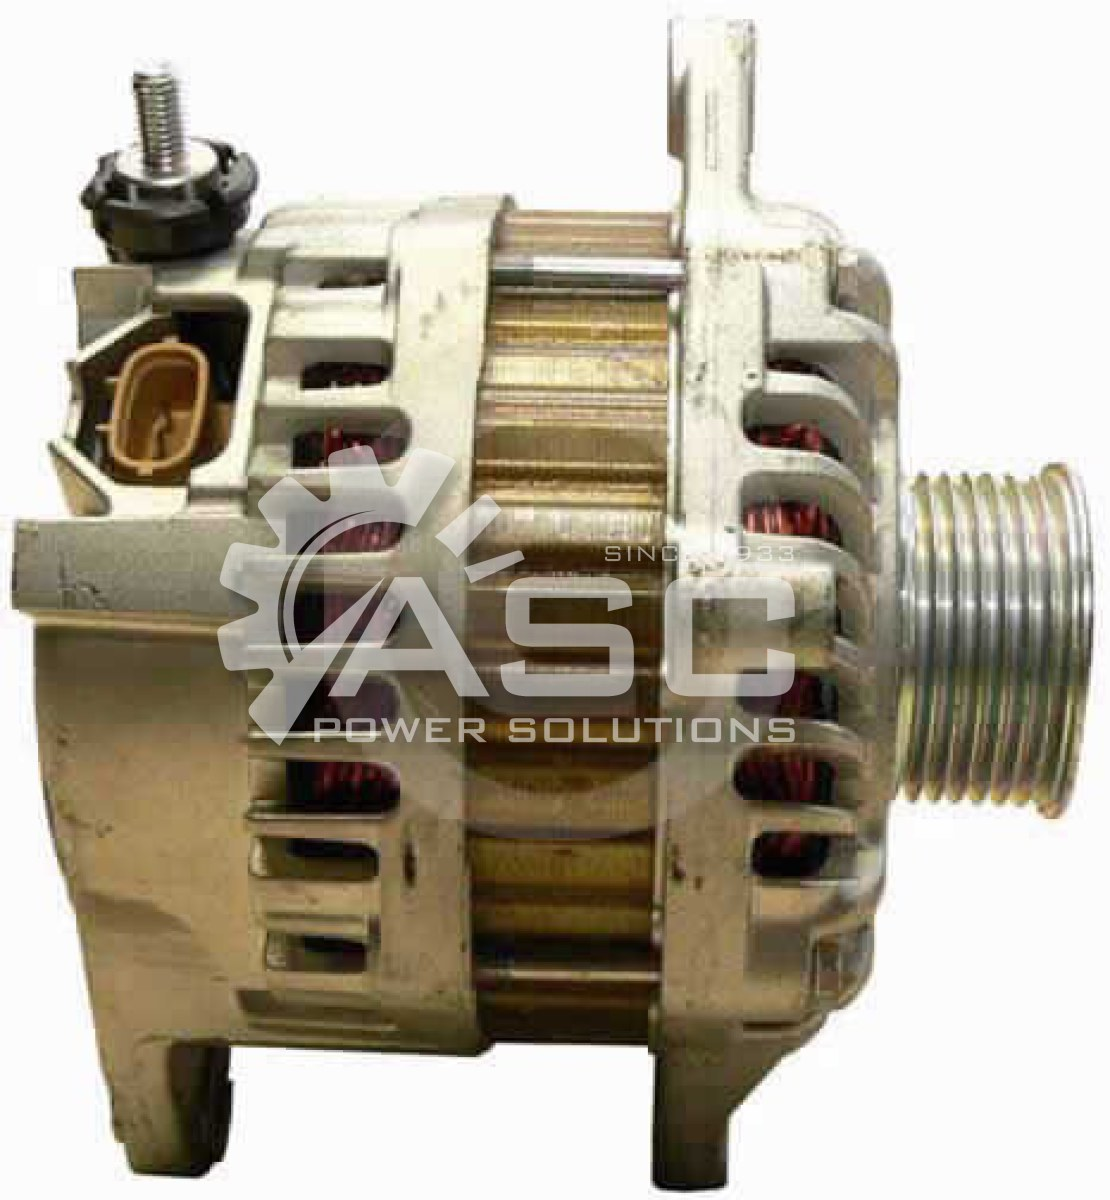 A481498_ASC, Alternator, 12V, 130 Amp, IR, IF, CW, 55MM, Mitsubishi, Reman